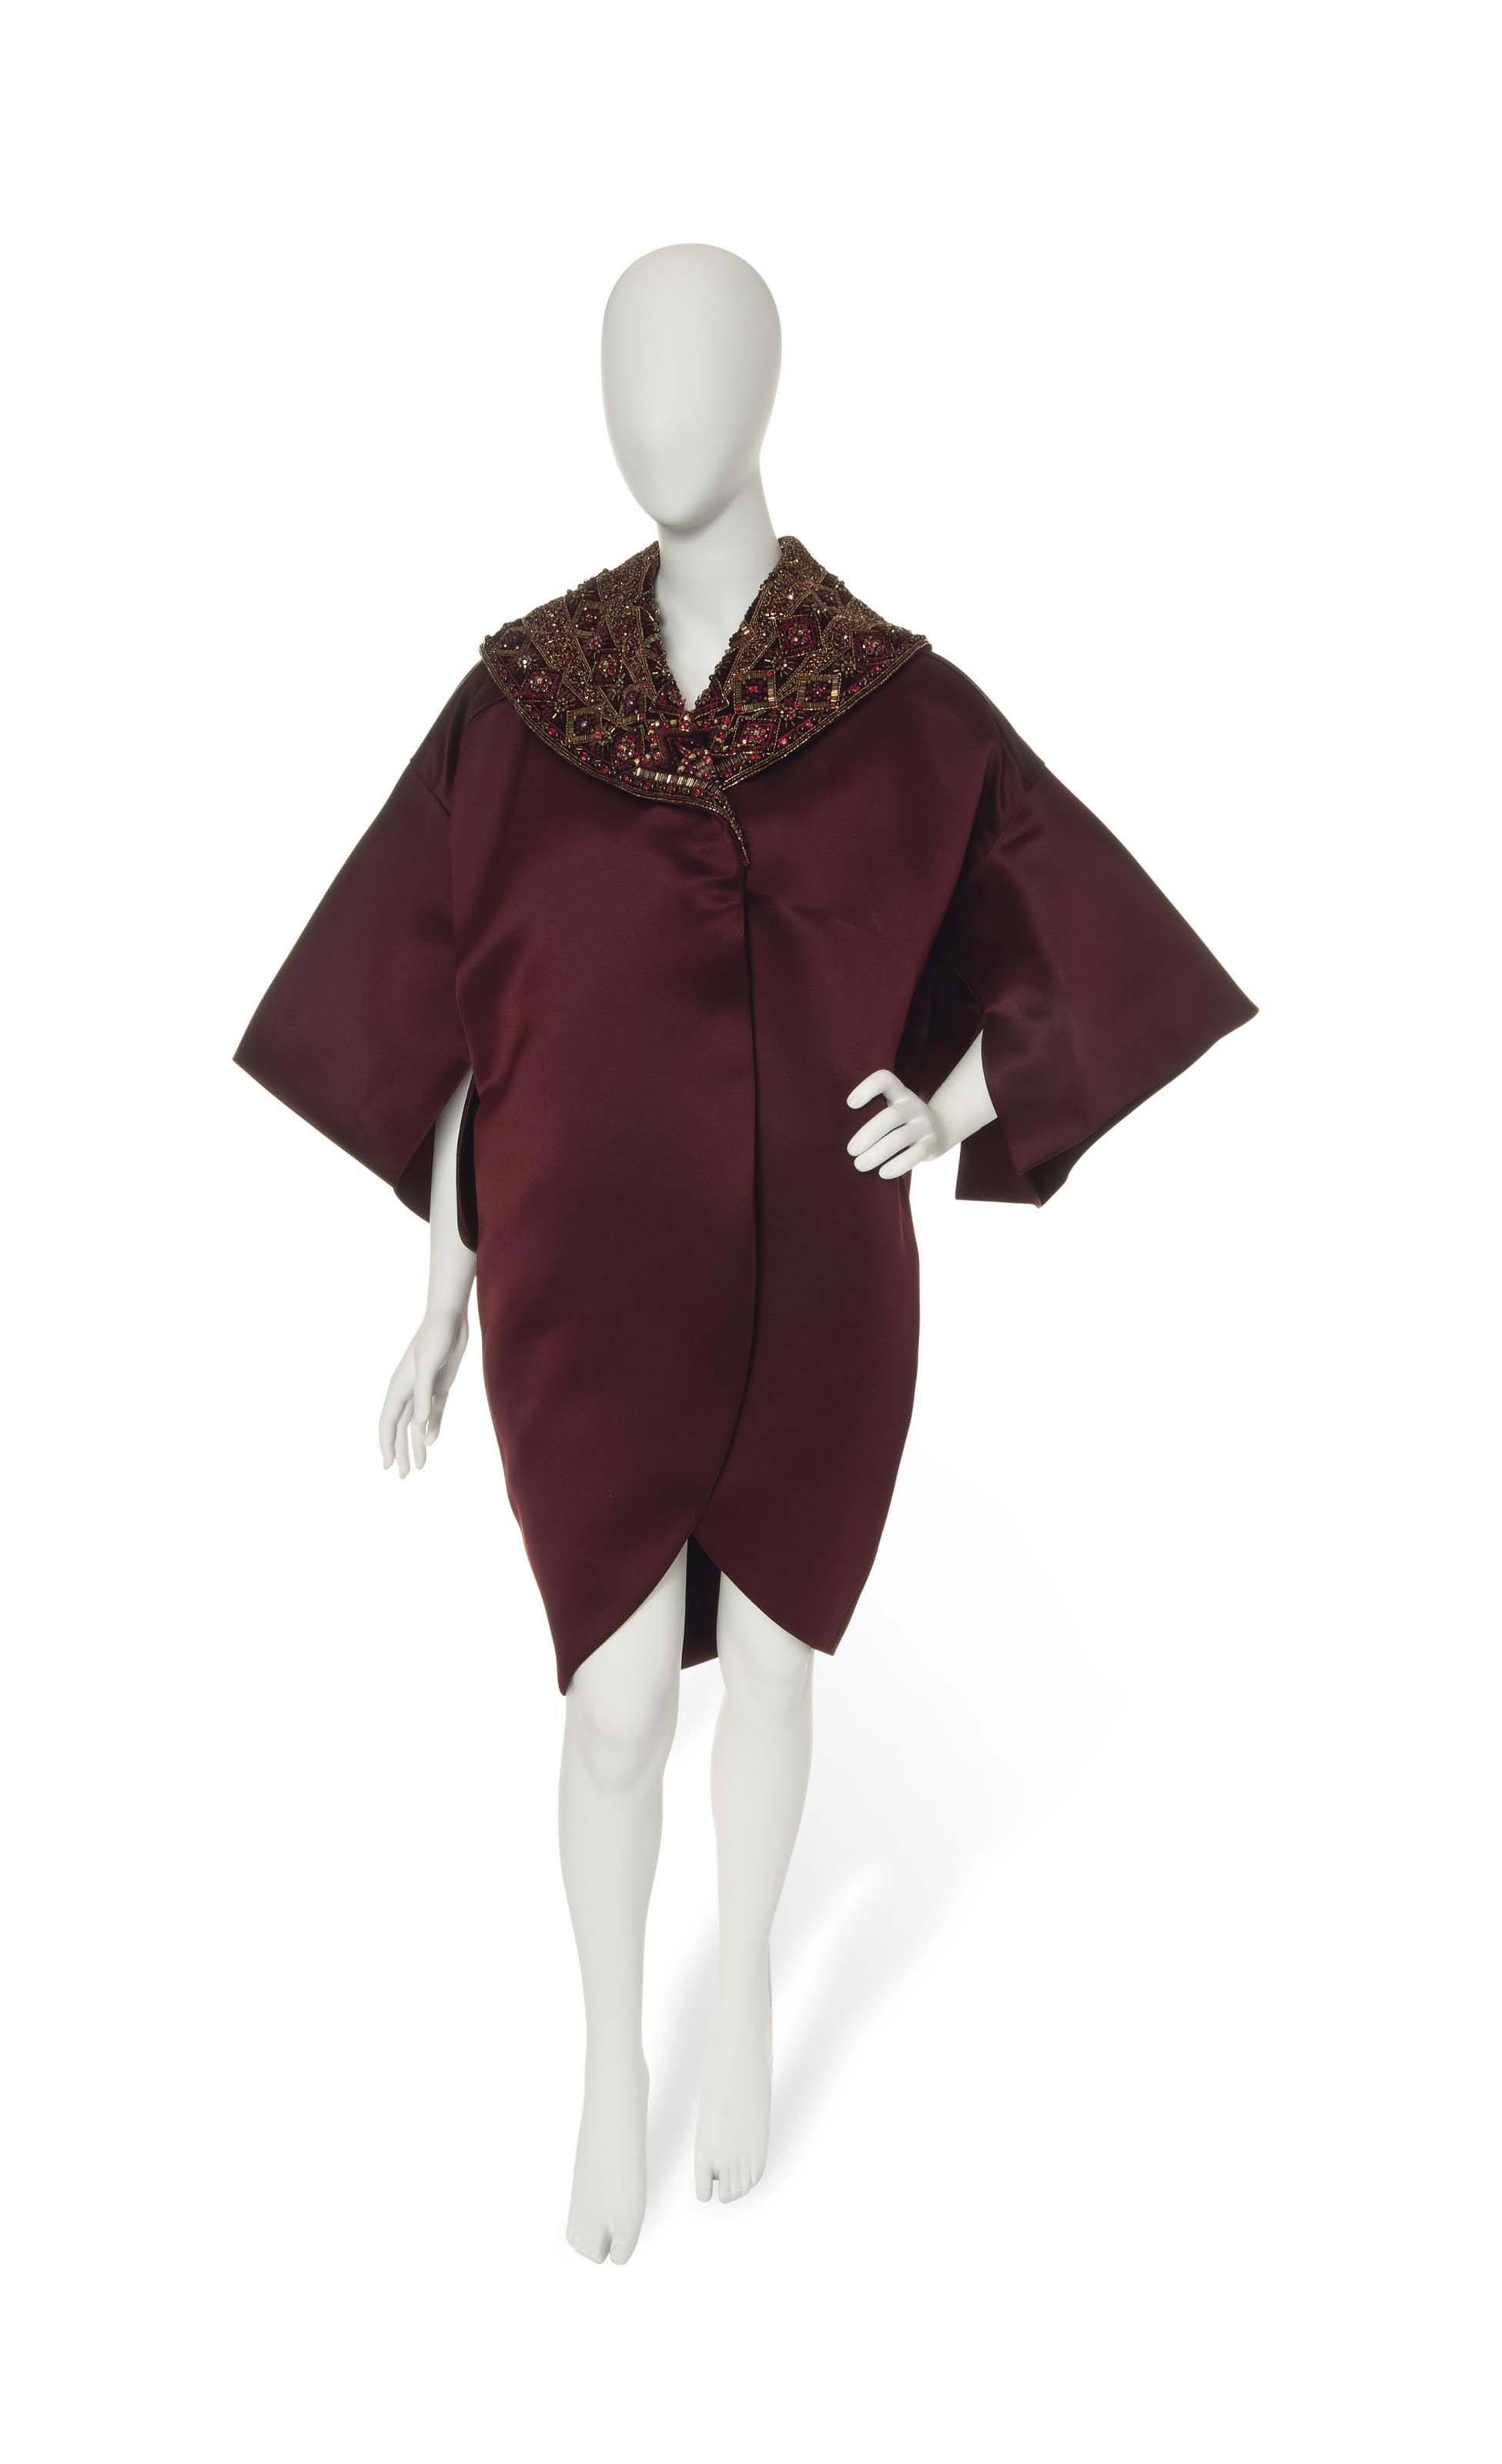 A JOHN GALLIANO FOR CHRISTIAN DIOR MULBERRY SATIN EVENING COAT